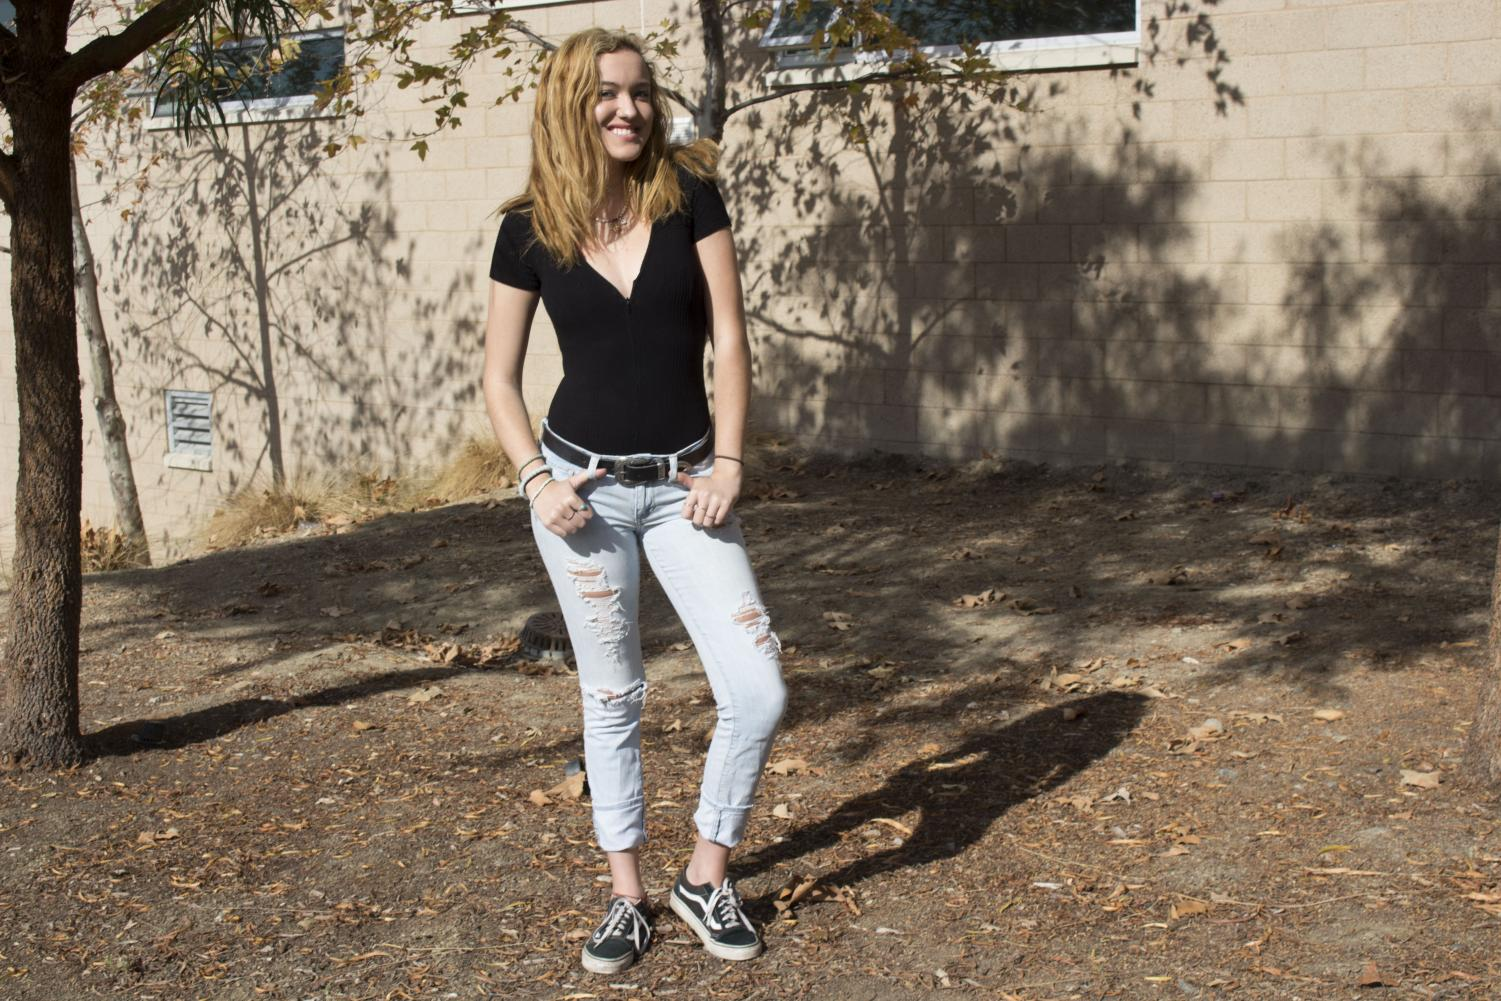 Senior+Charlotte+Dowson+pairs+a+classic+black+short+sleeve+v-neck+and+ripped+slim+light+wash+jeans.+She+enjoys+shopping+at+Urban%2C+Nordstrom%2C+Pacsun%2C+Madewell%2C+Supreme%2C+and+Brixton.